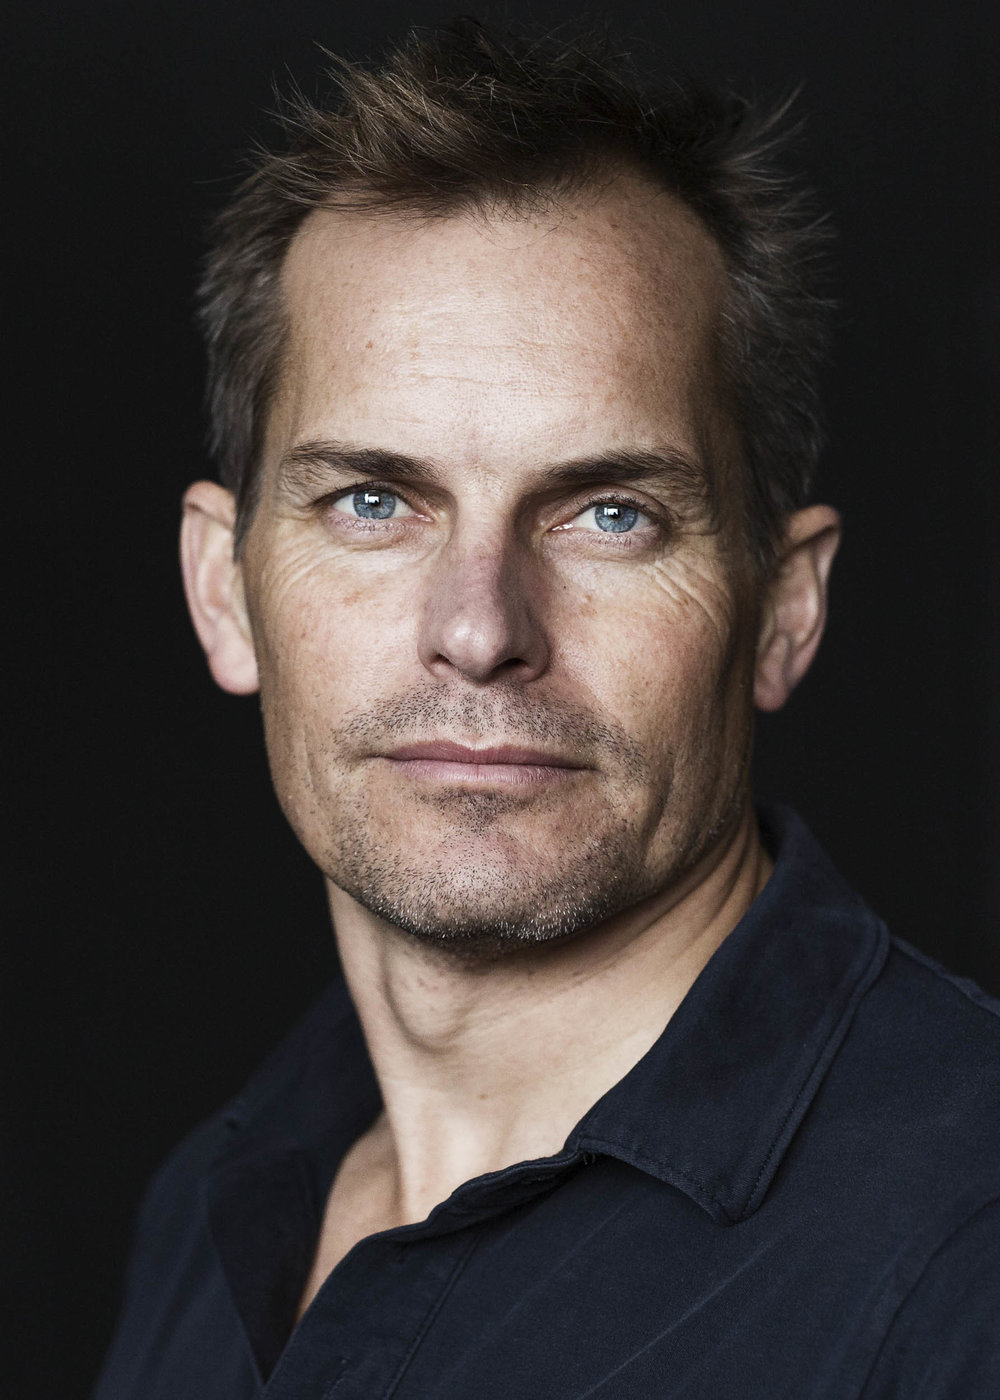 Steve photographed by actors headshot photographer Nick Walters3.jpg